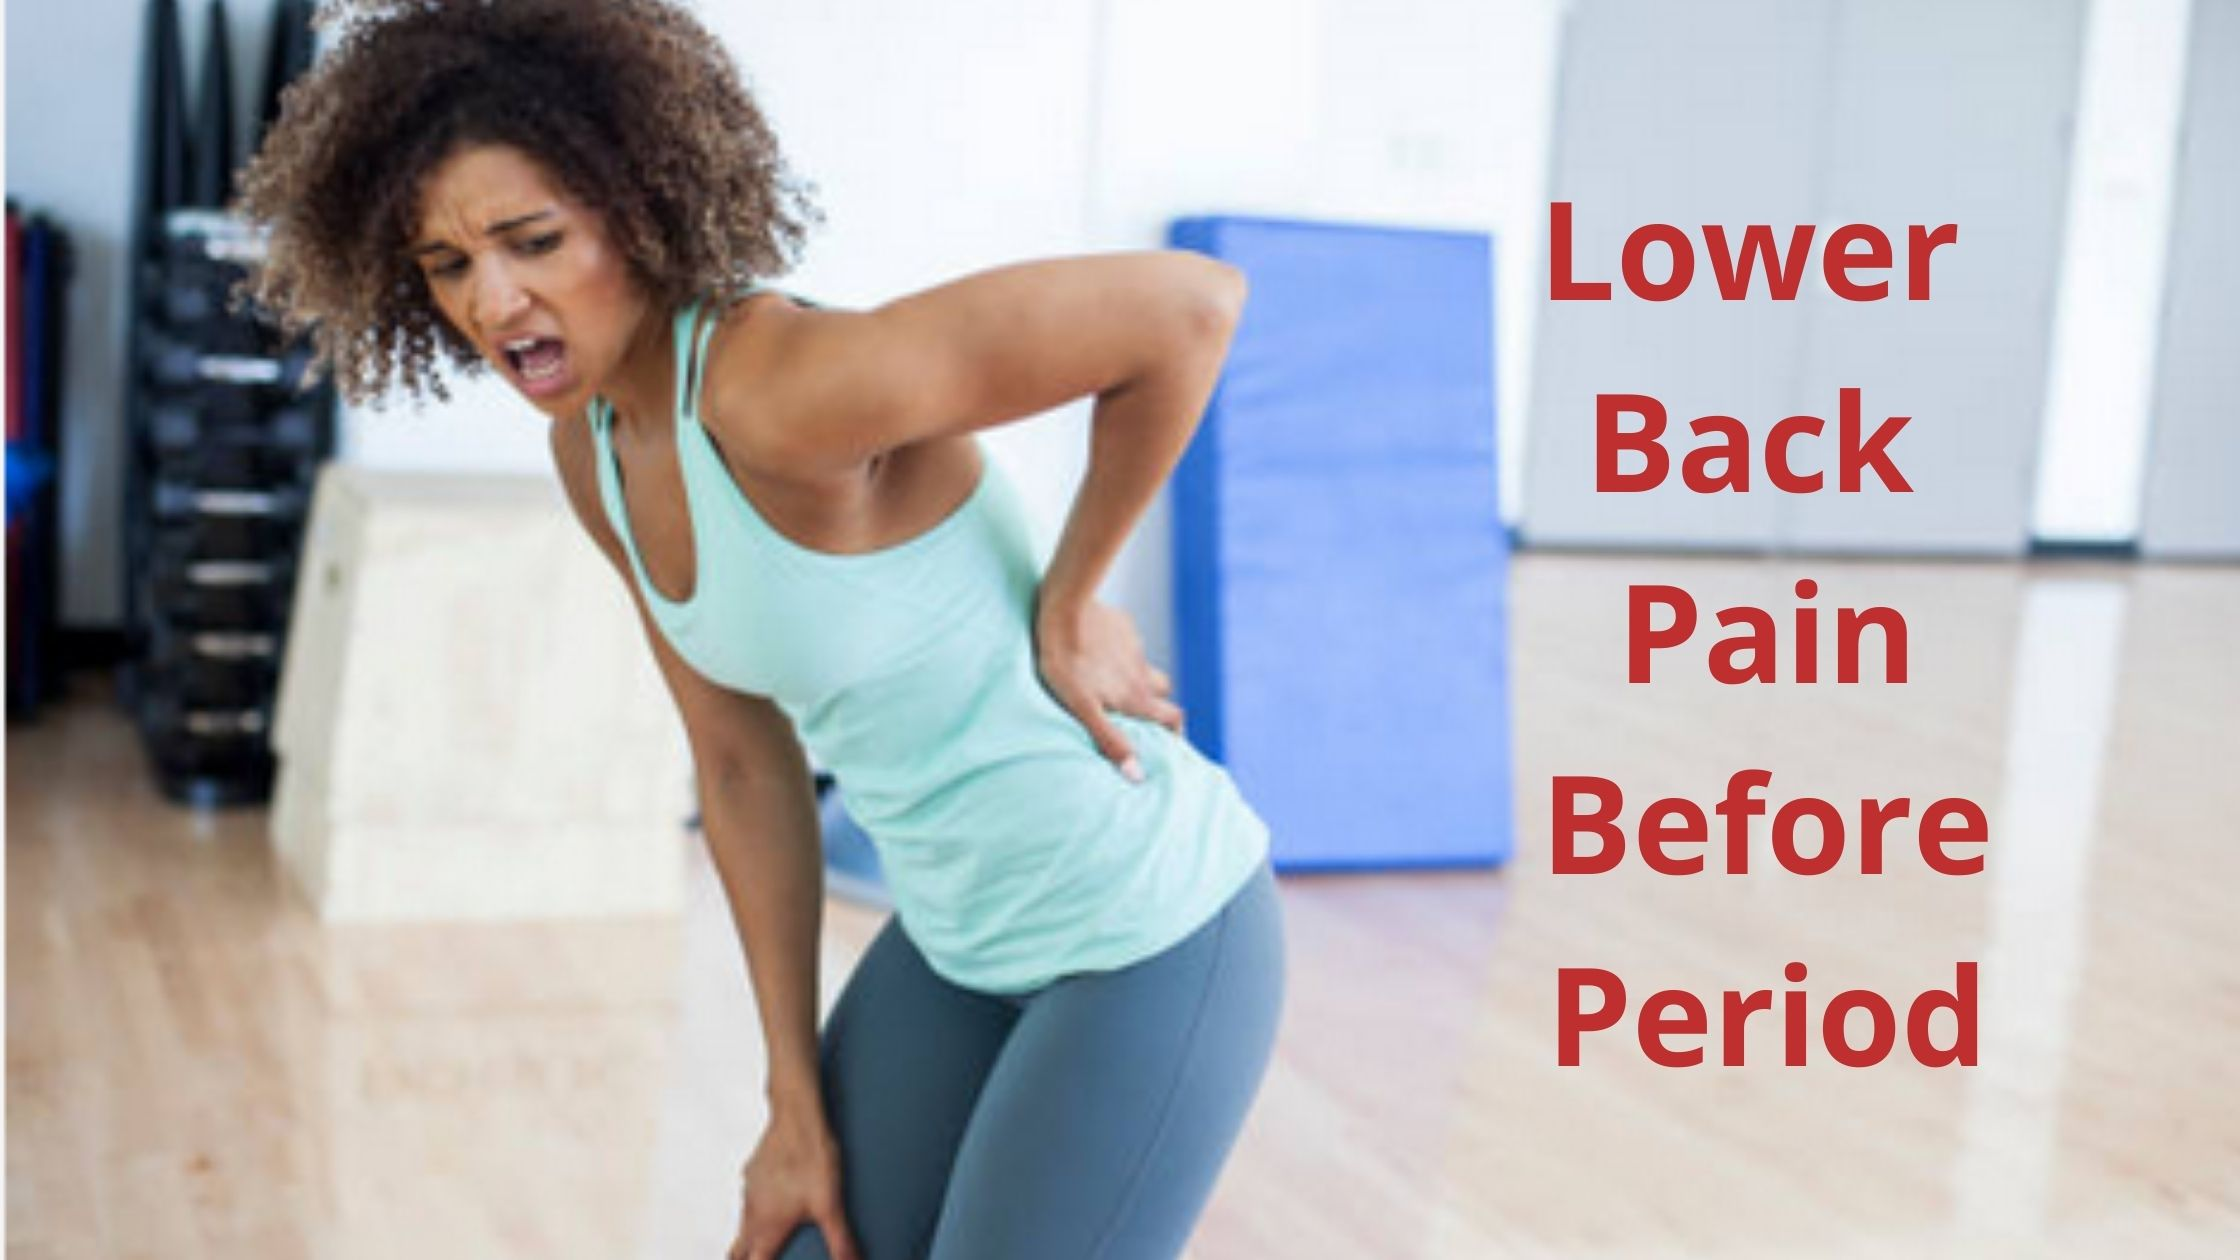 Lower Back Pain Before Period - Cause, Symptom and Treatment.